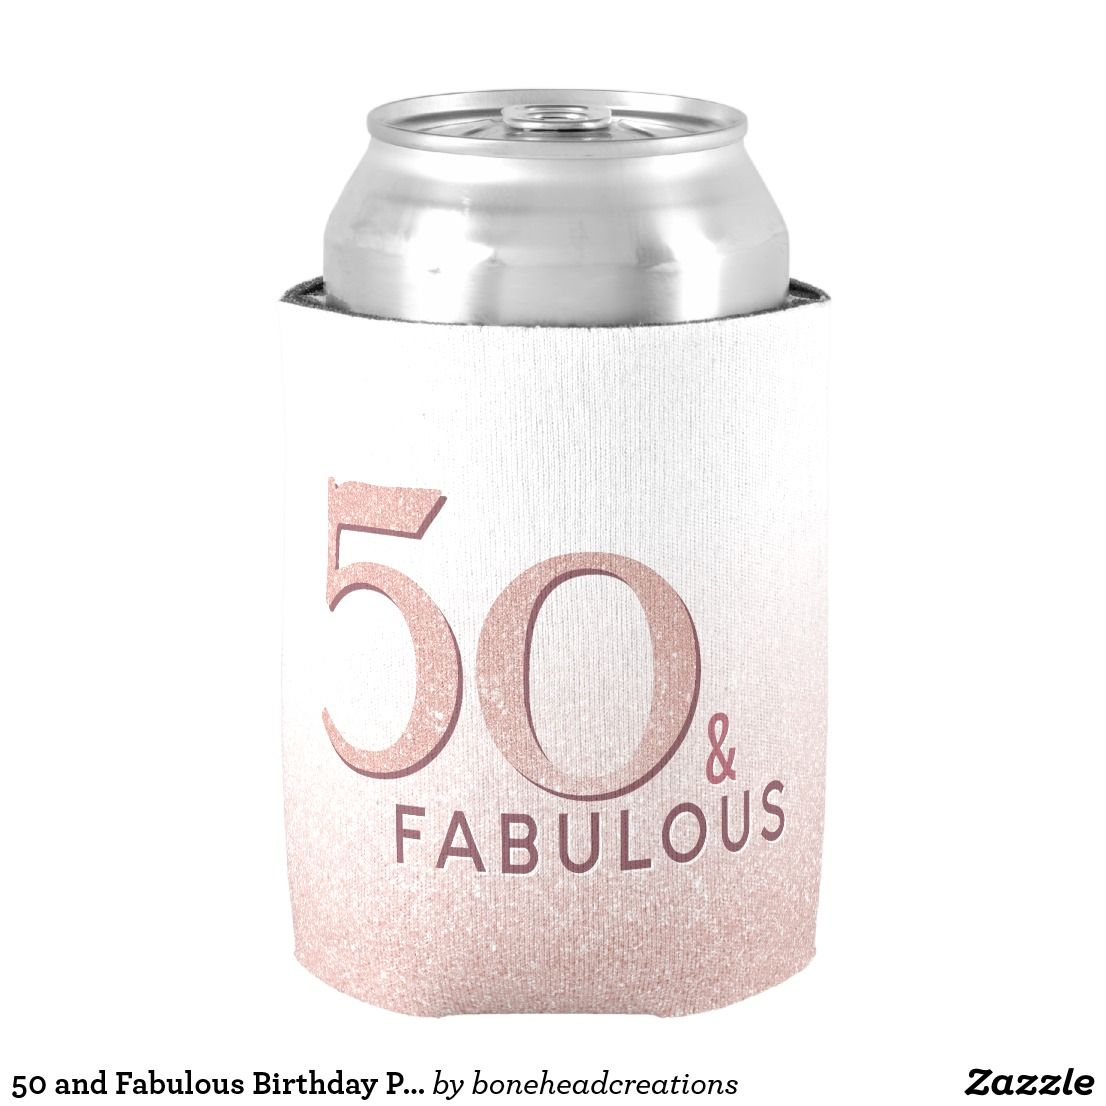 50 and Fabulous Birthday Pink Modern Typography Can Cooler #goldglitterbackground